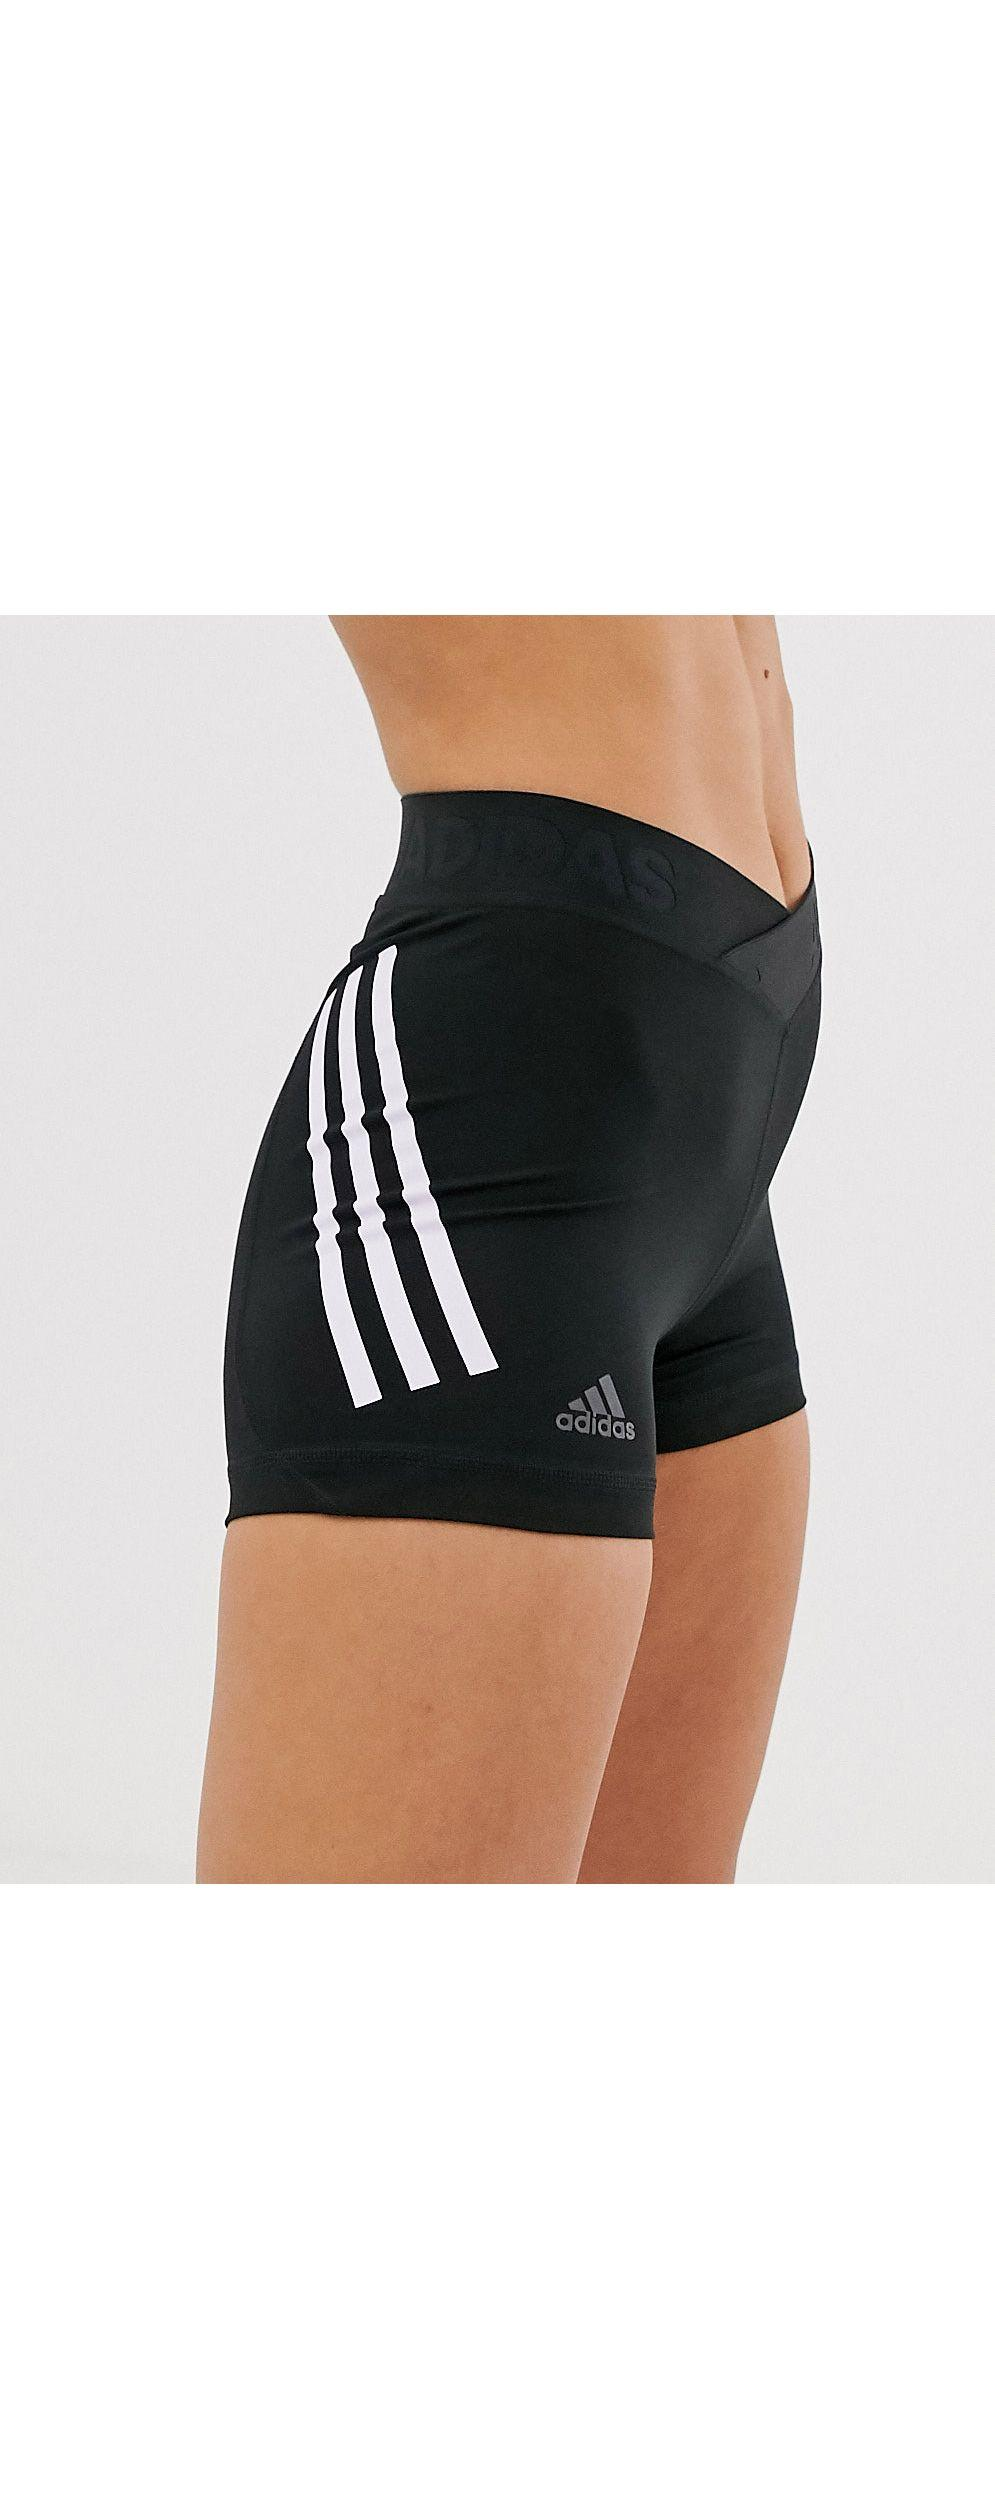 Adidas Training - Short moulant à trois bandes adidas Originals en coloris Noir